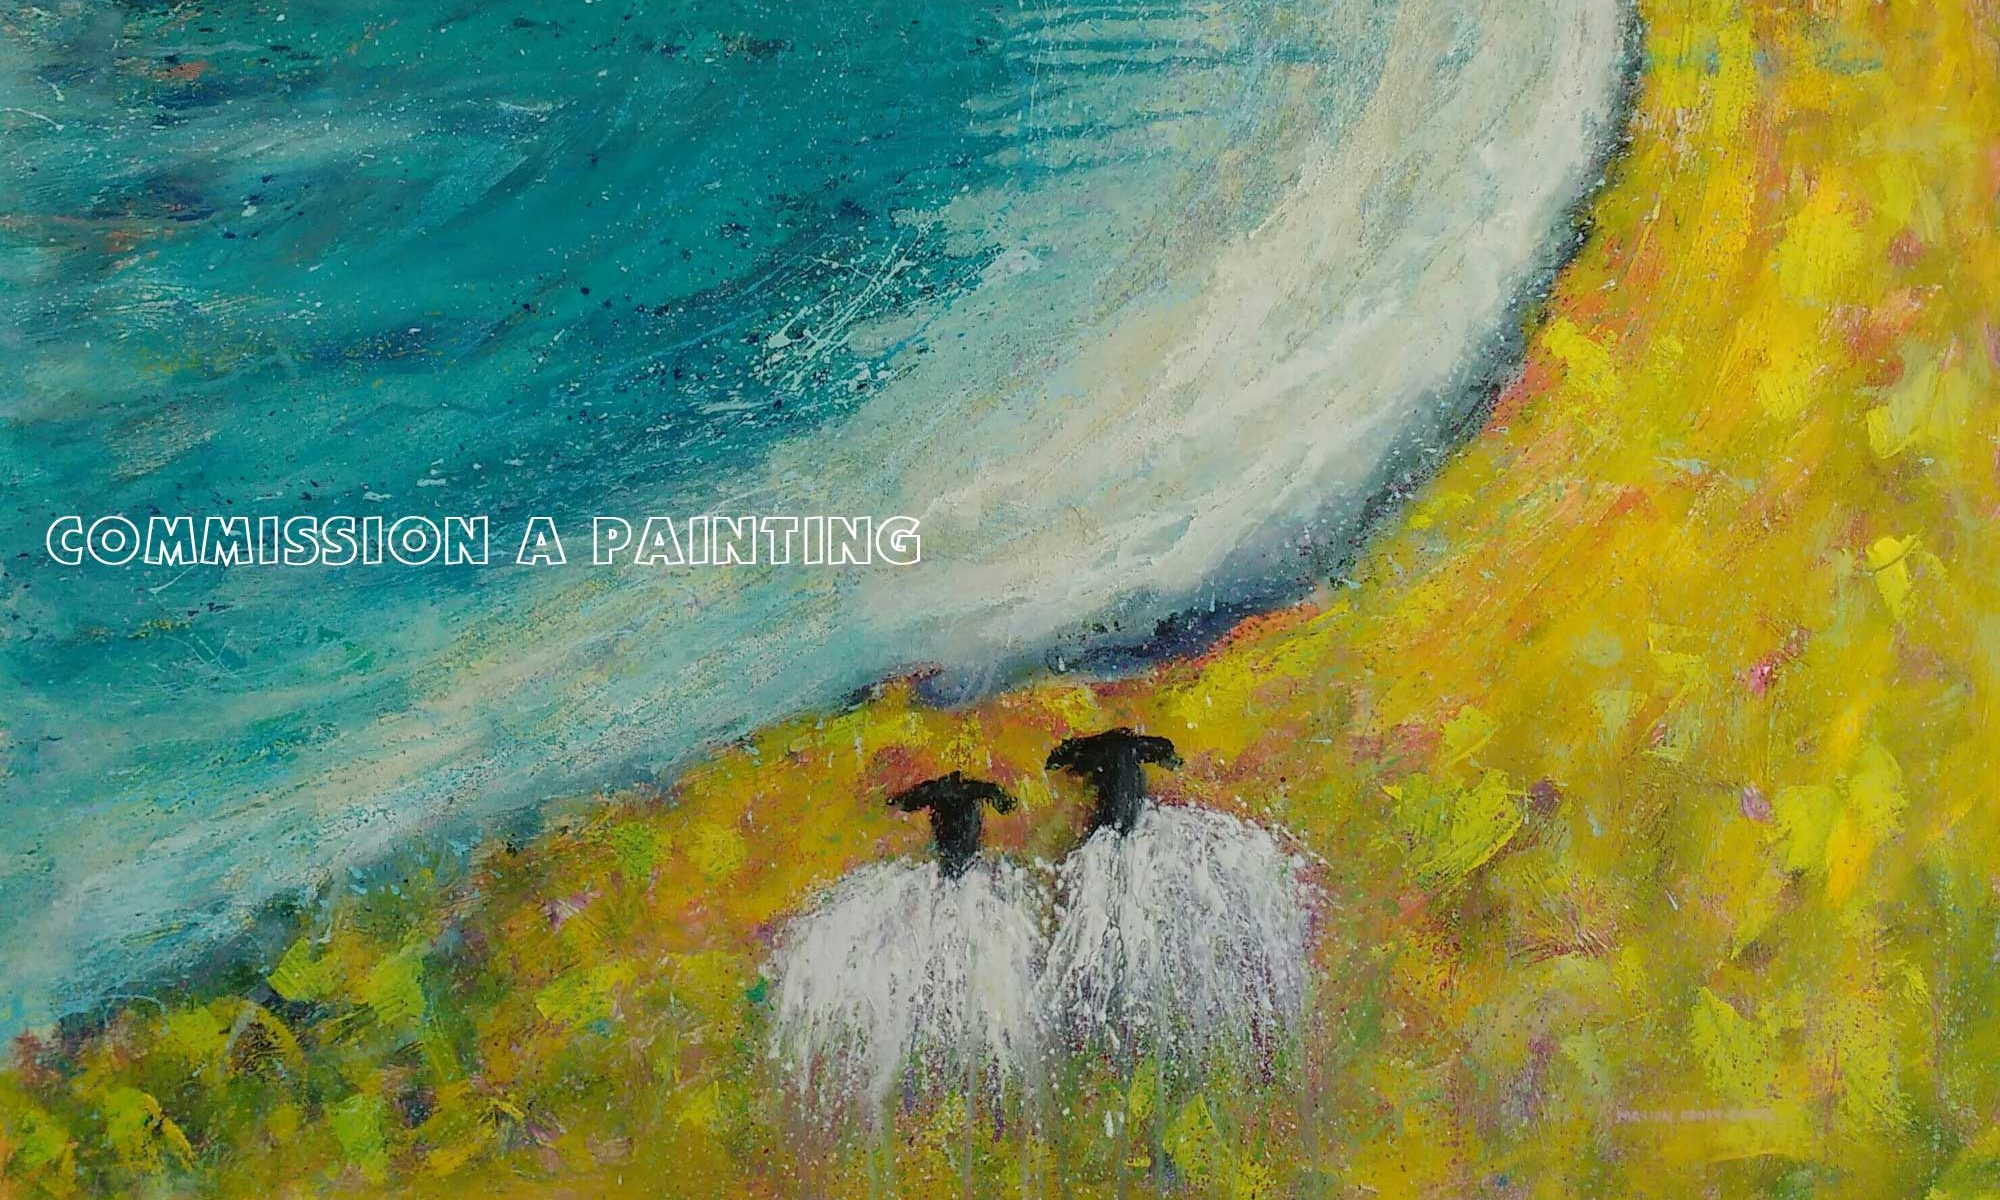 Commission a Painting by Skye artist Marion Boddy-Evans in Scotland